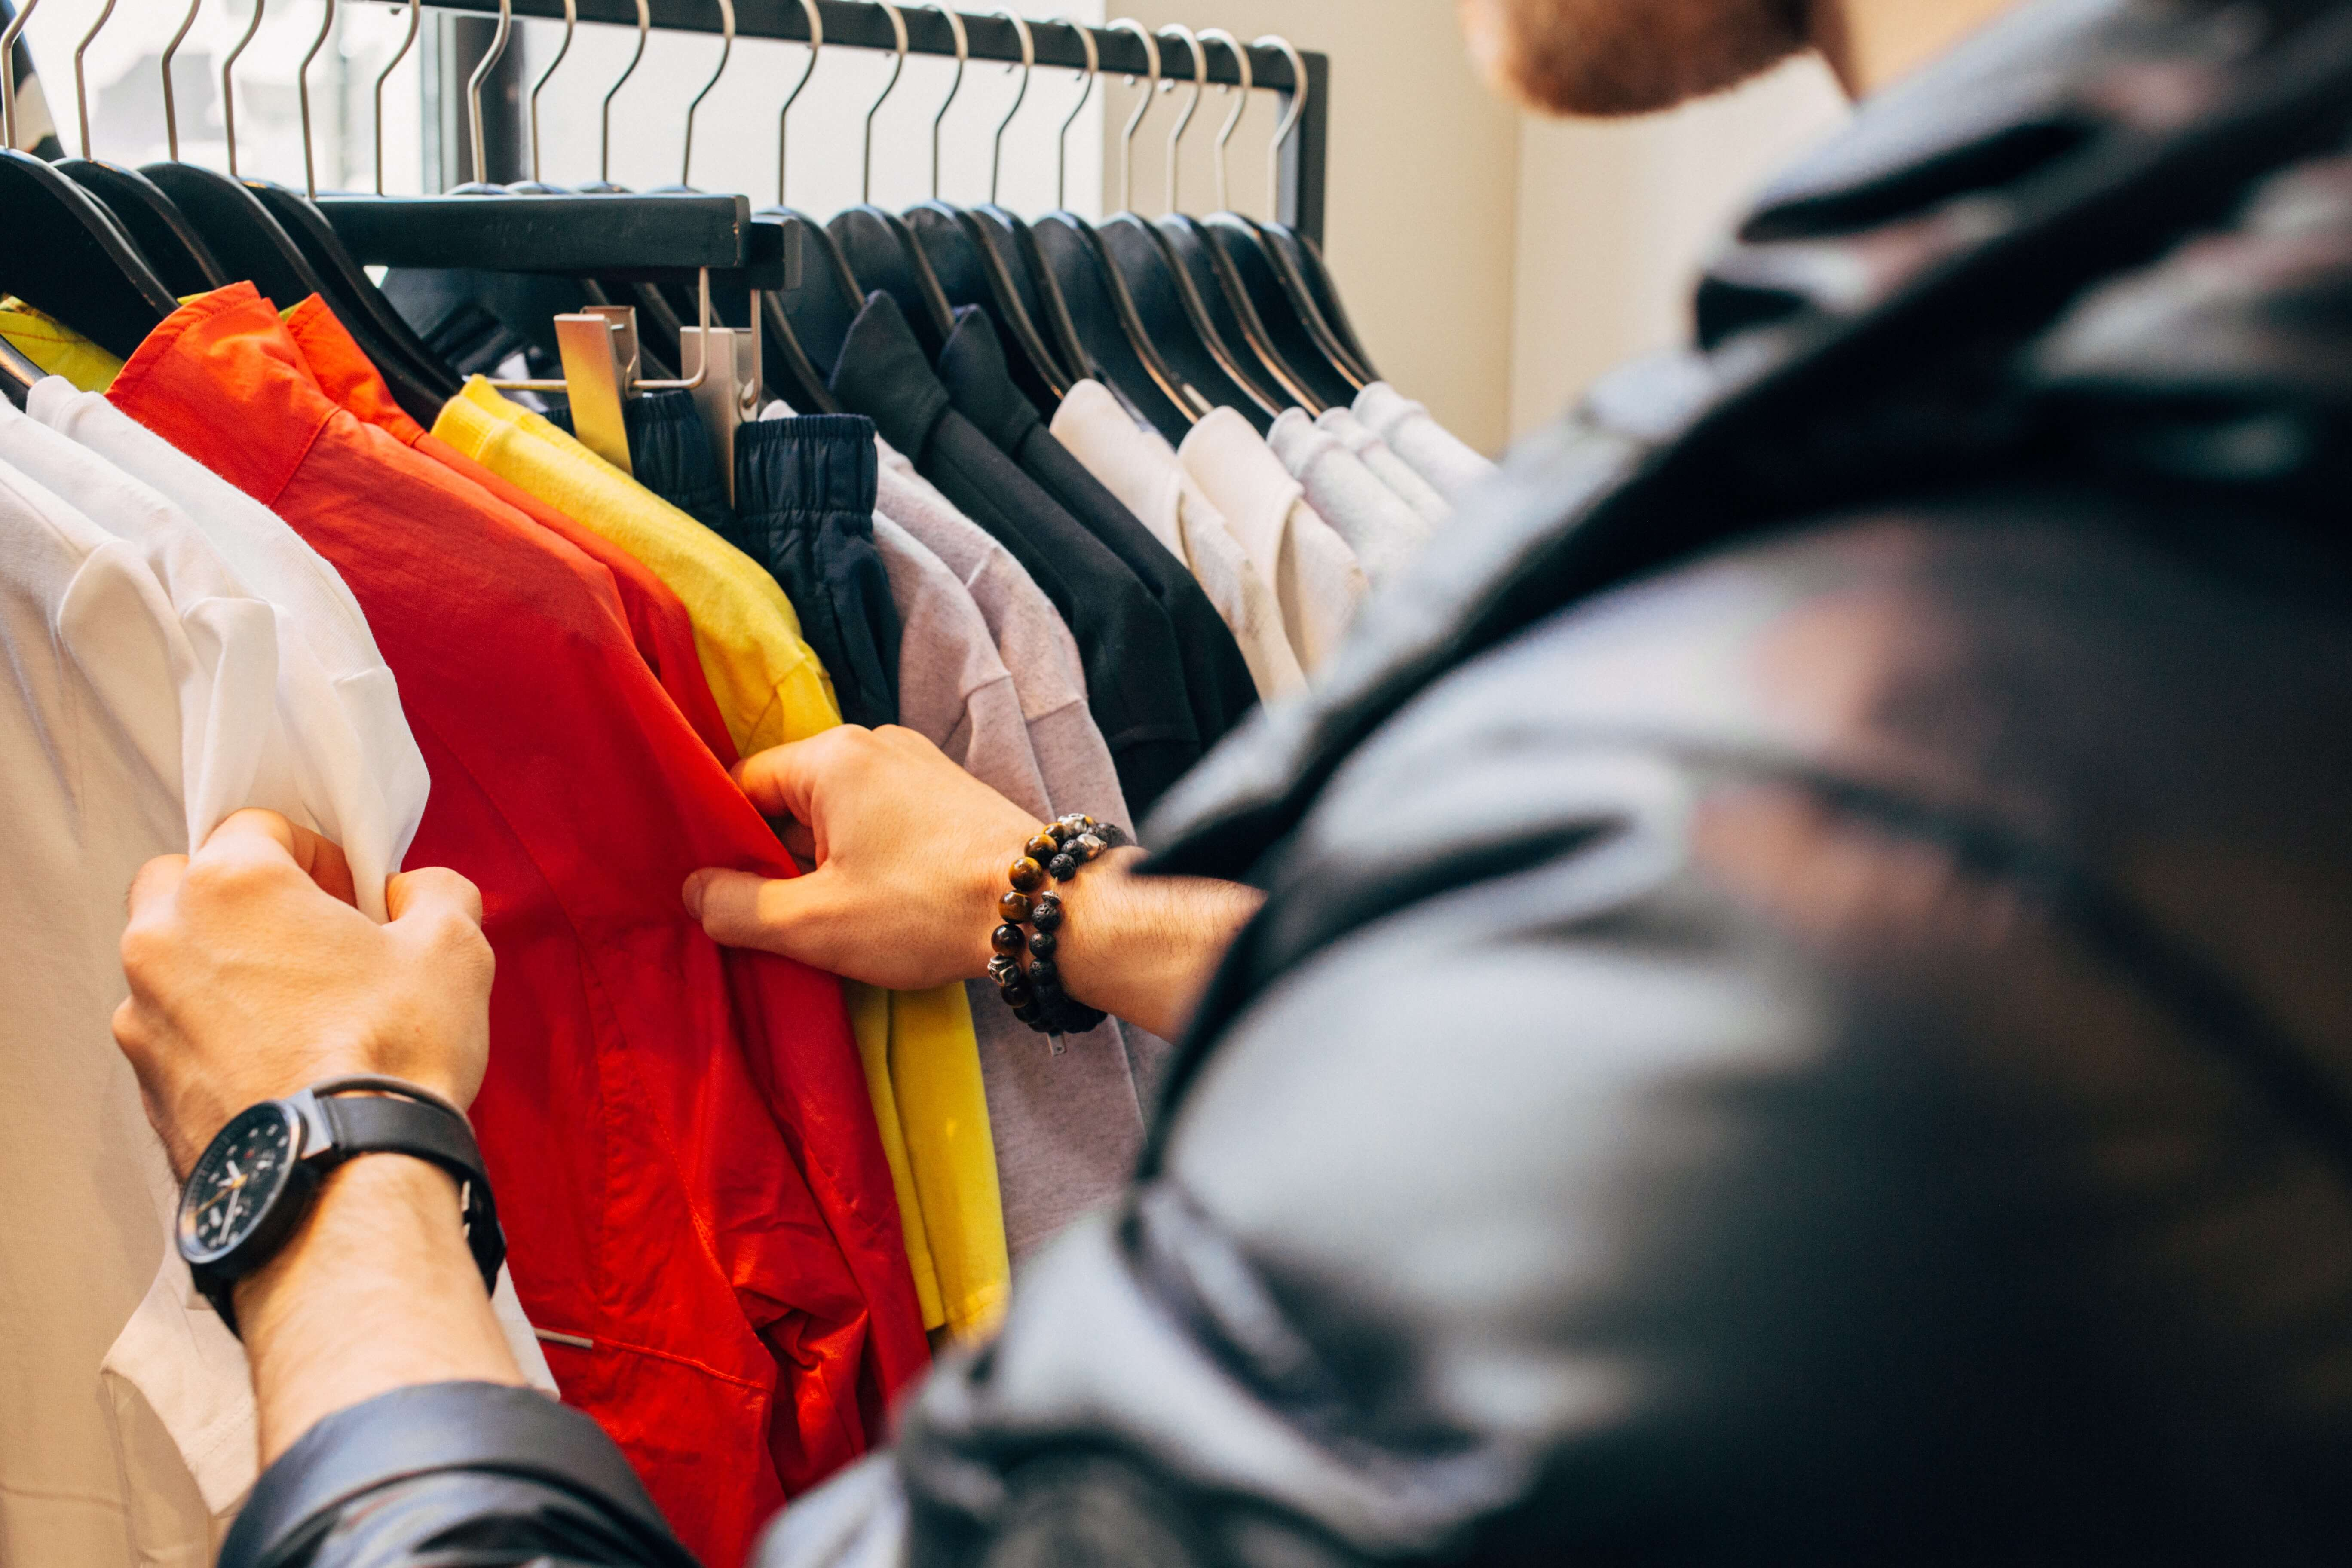 Live Stream Shopping Technology: The Future of E-Commerce